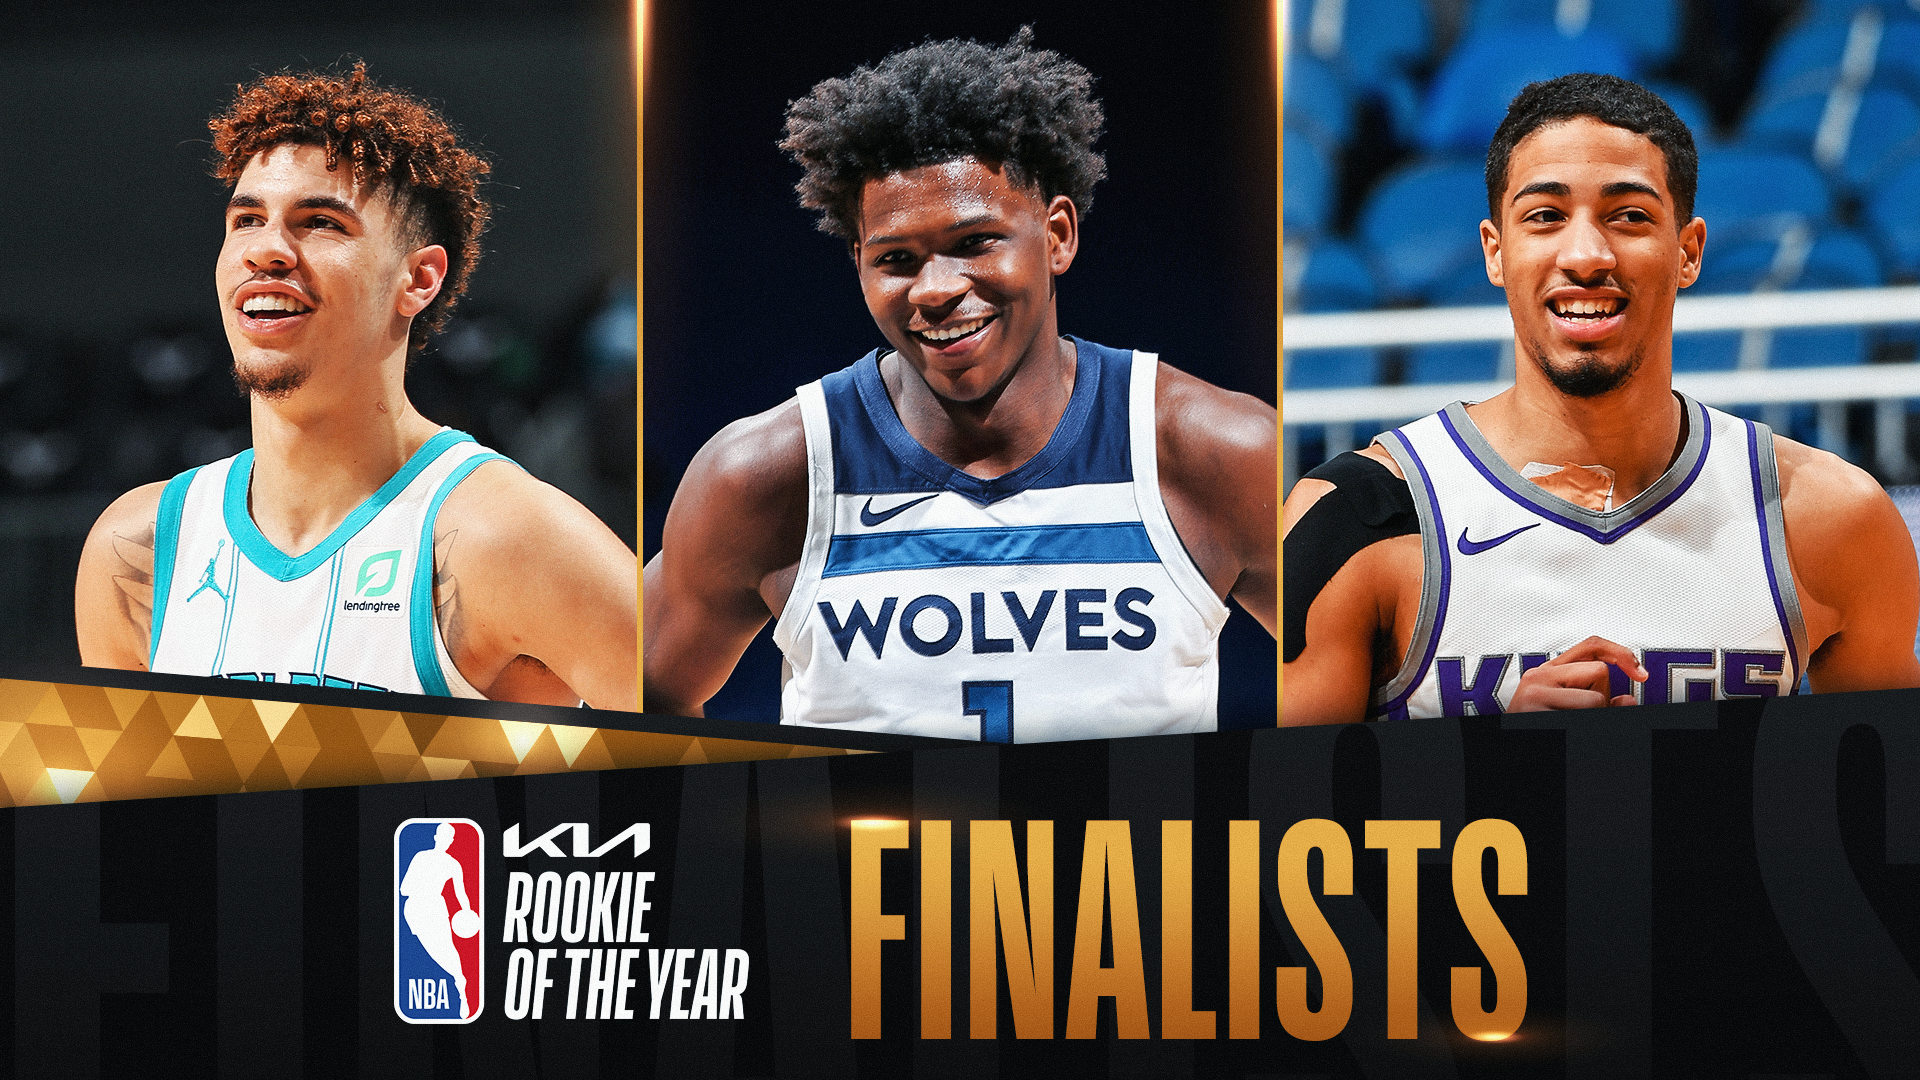 Who is the Rookie of the Year?